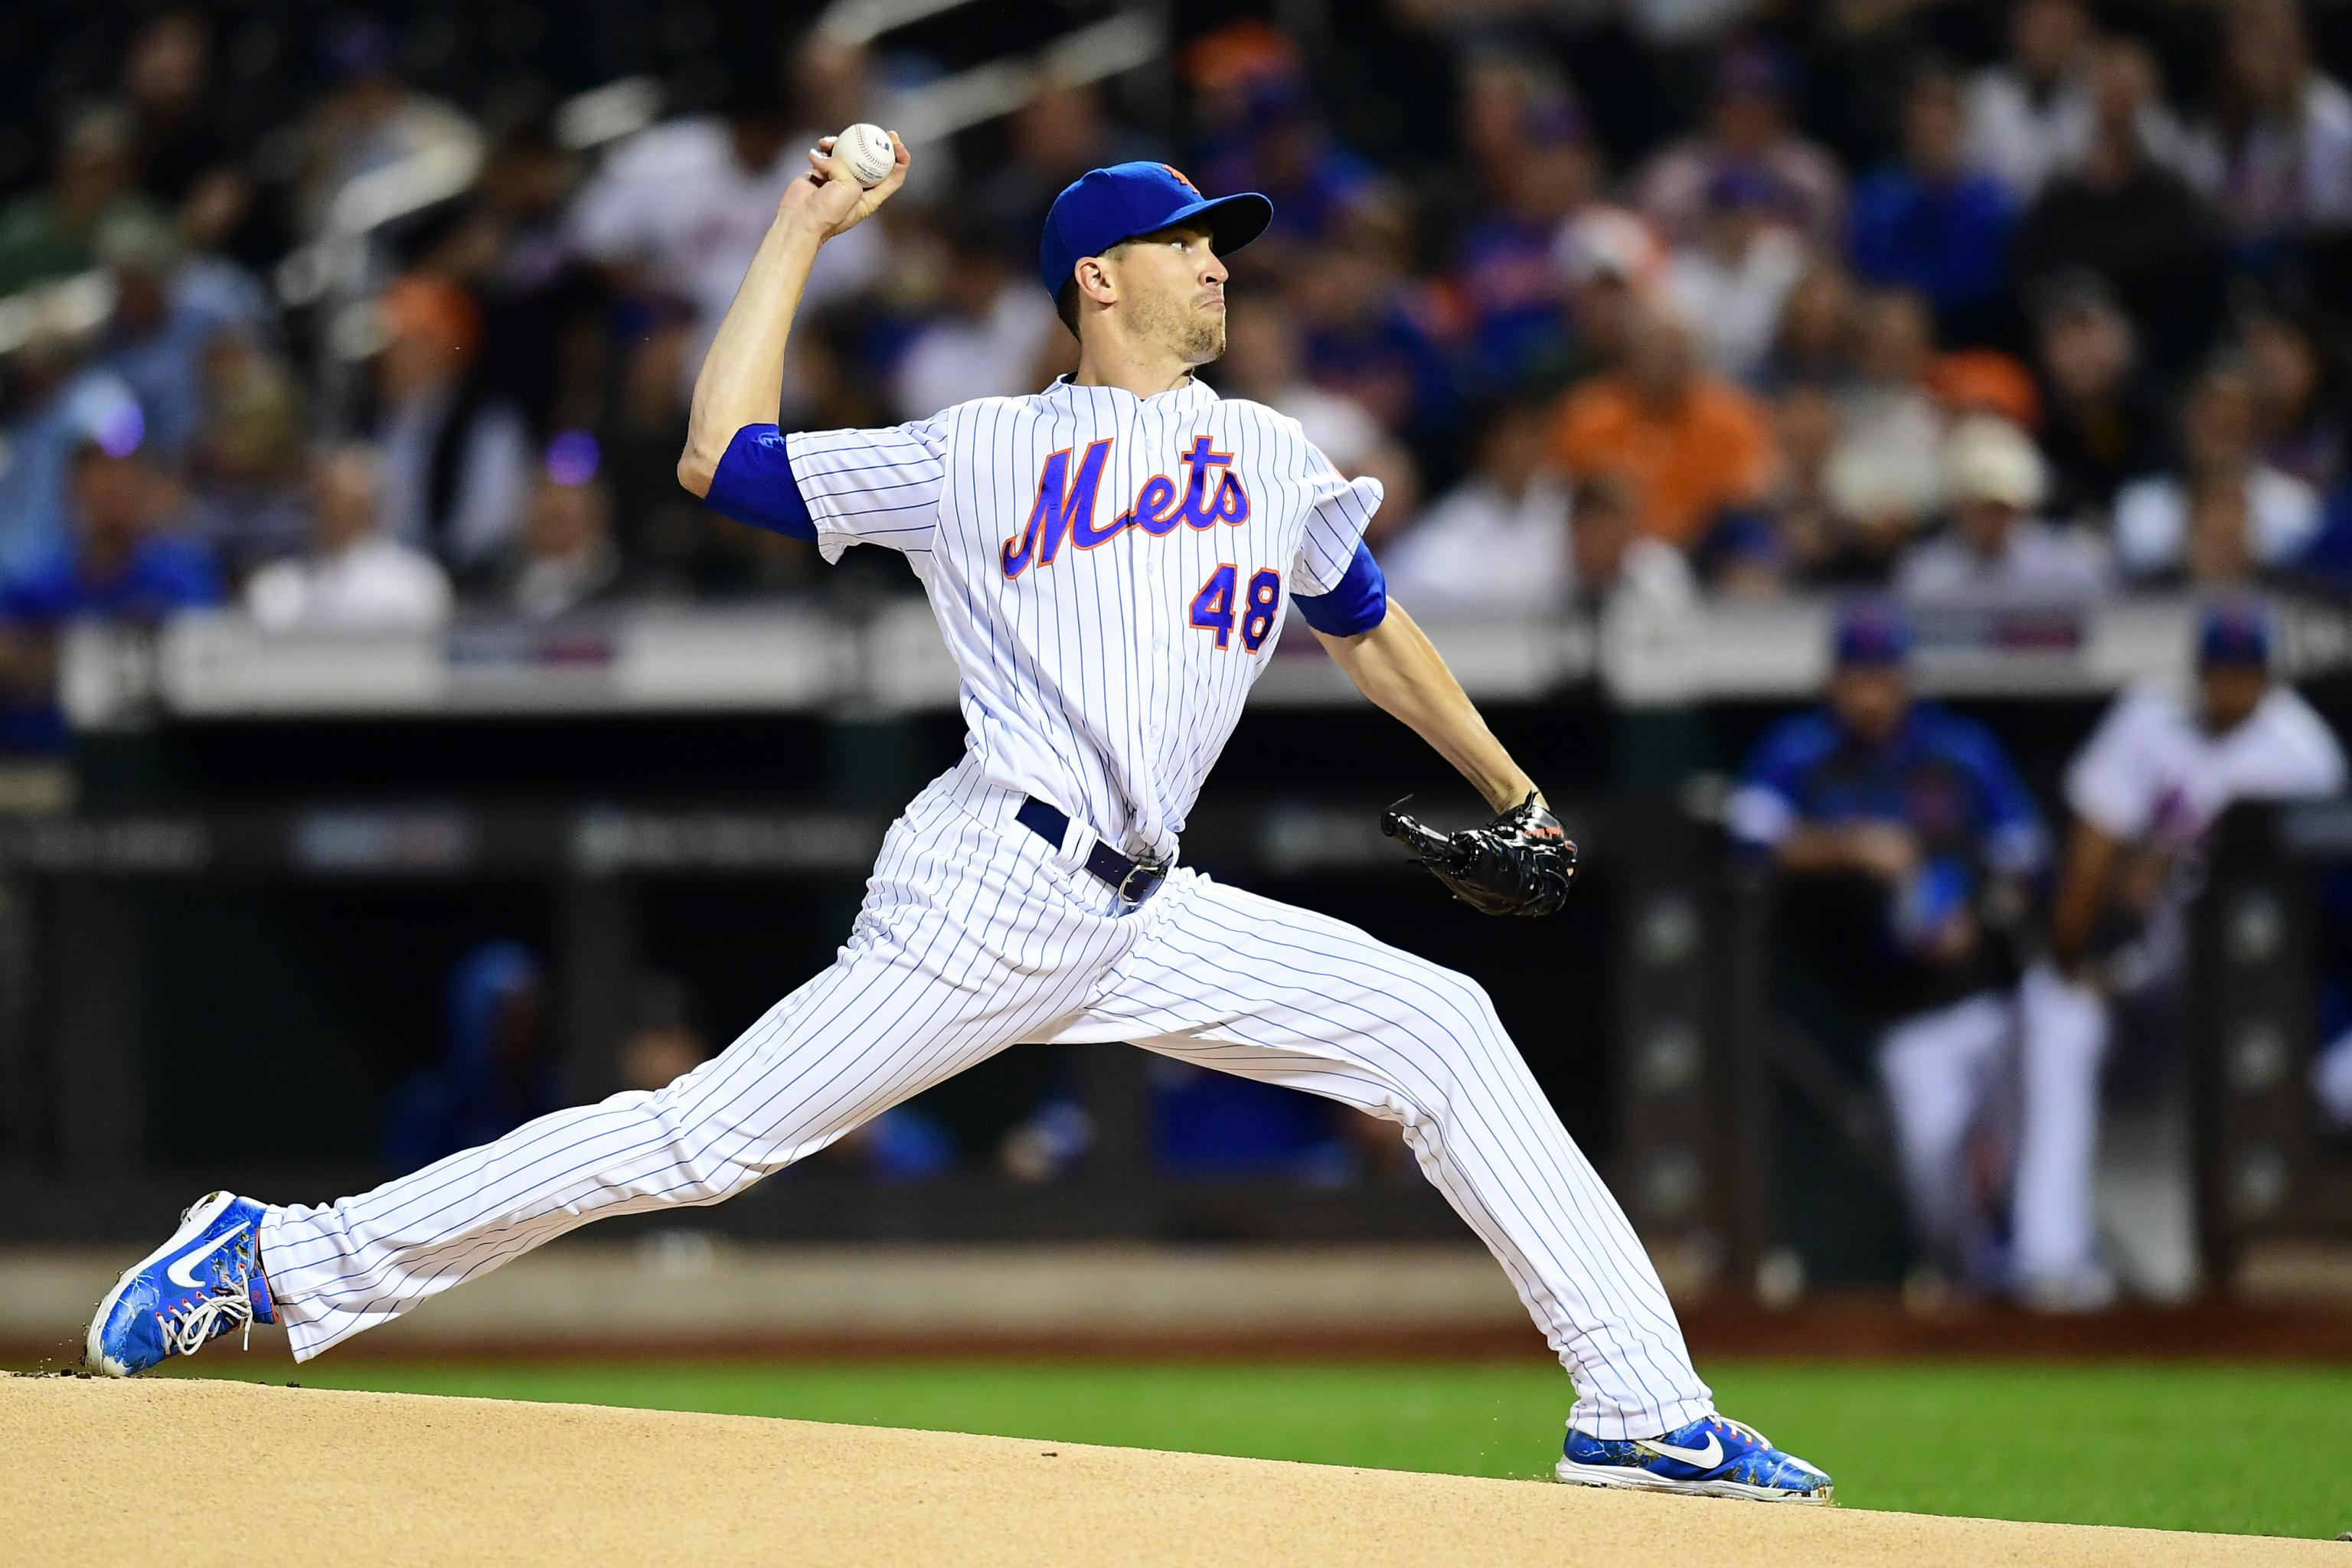 Mets' Jacob deGrom Wins 2019 NL Cy Young Award over Max Scherzer ...